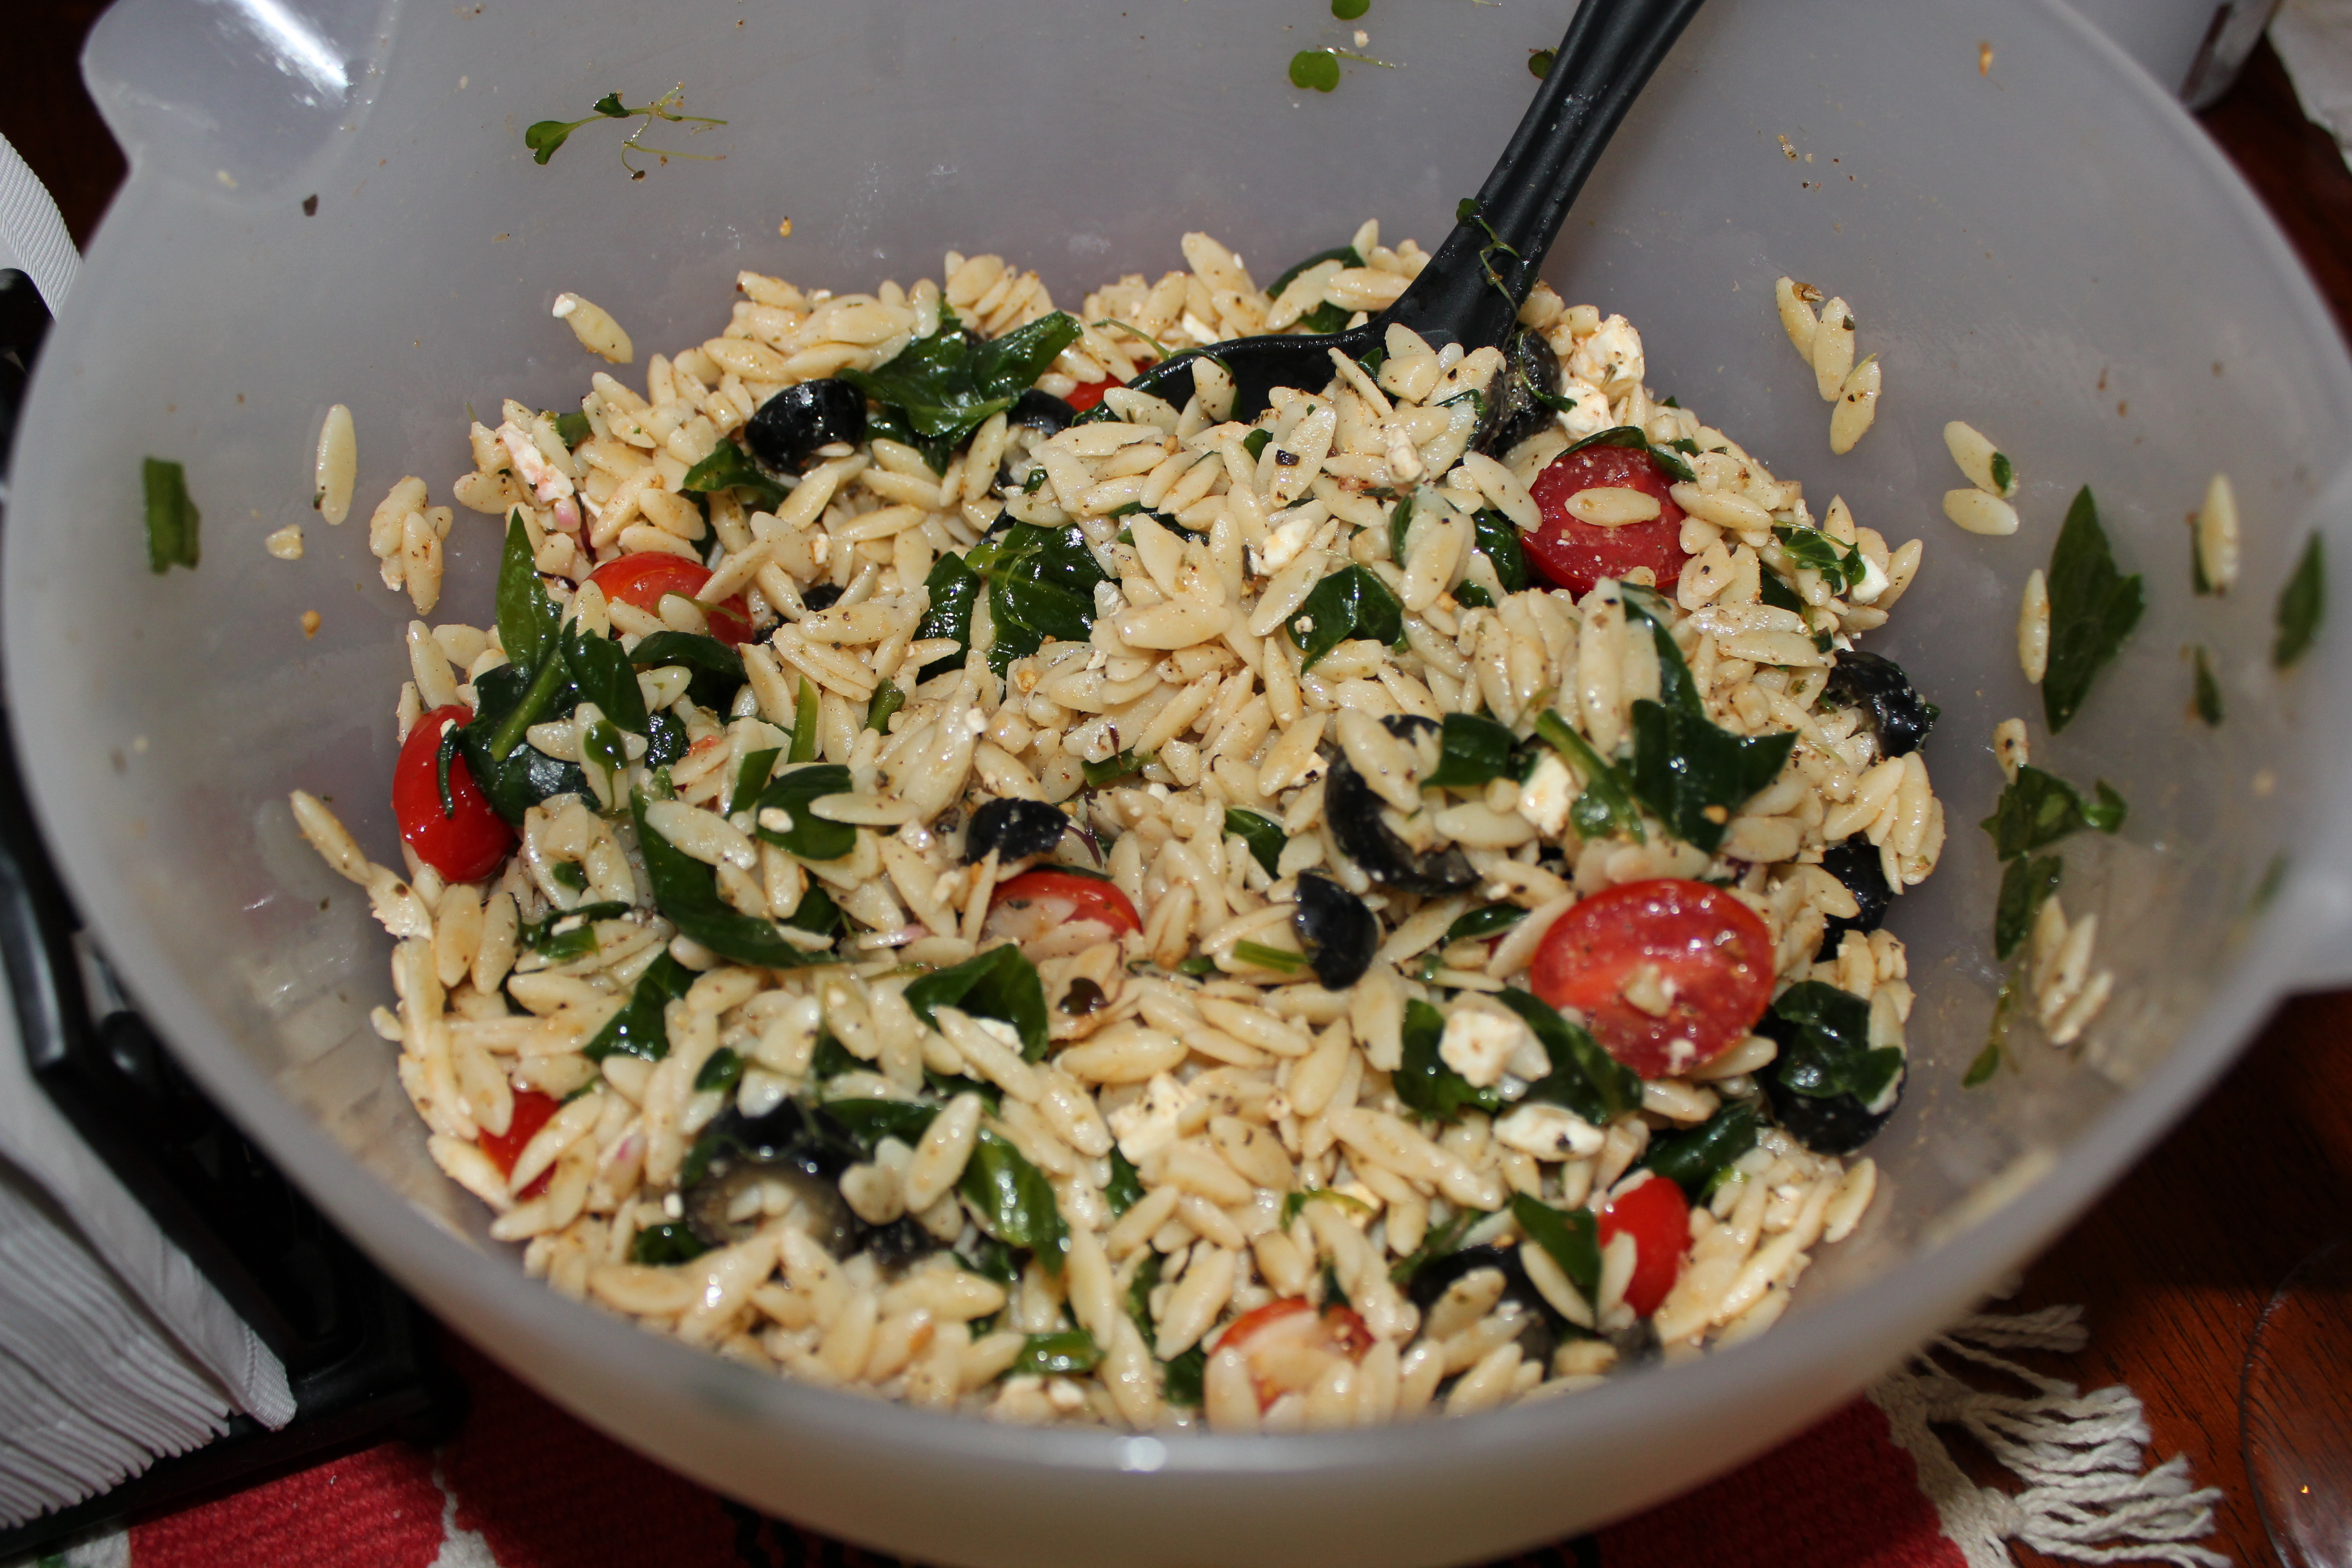 Orzo Salad with Cherry Tomatoes, Olives, Greens, Feta Cheese and Olive ...